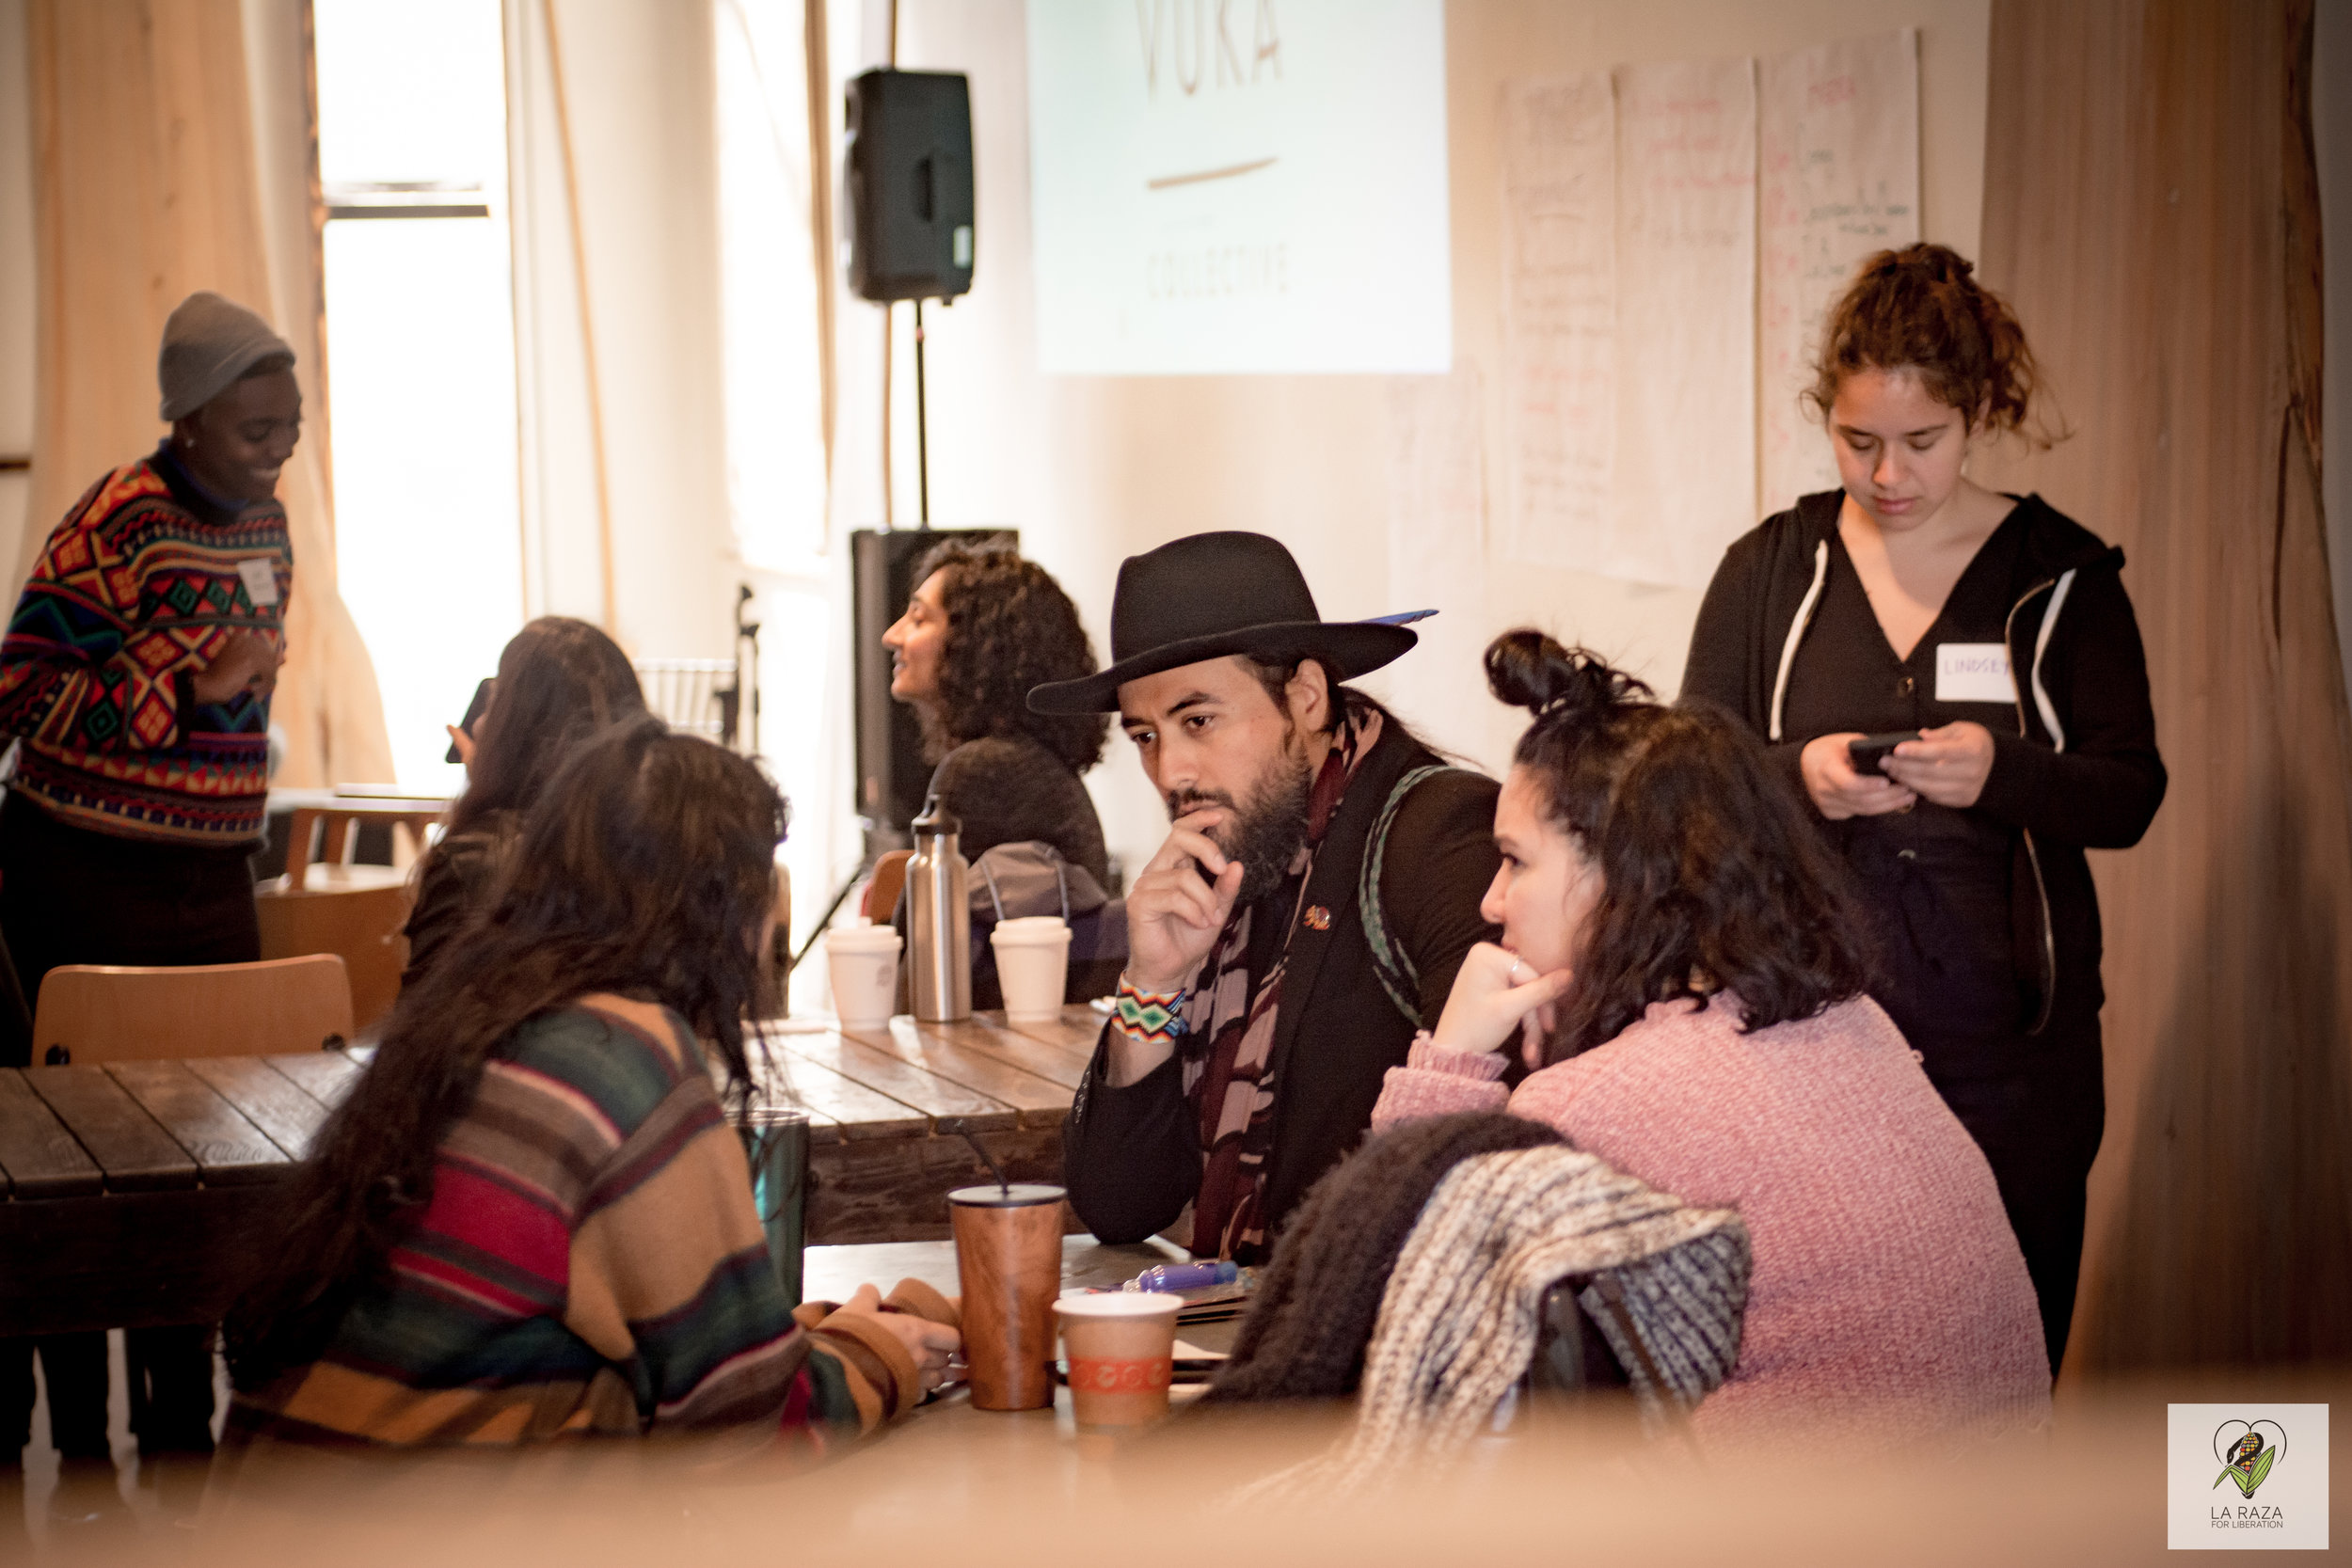 About Us - La Raza for Liberation is a grassroots nonprofit organization that connects, supports, and empowers Latinx/Indigenous people in the United States working across human, animal, and environmental justice movements.Learn more